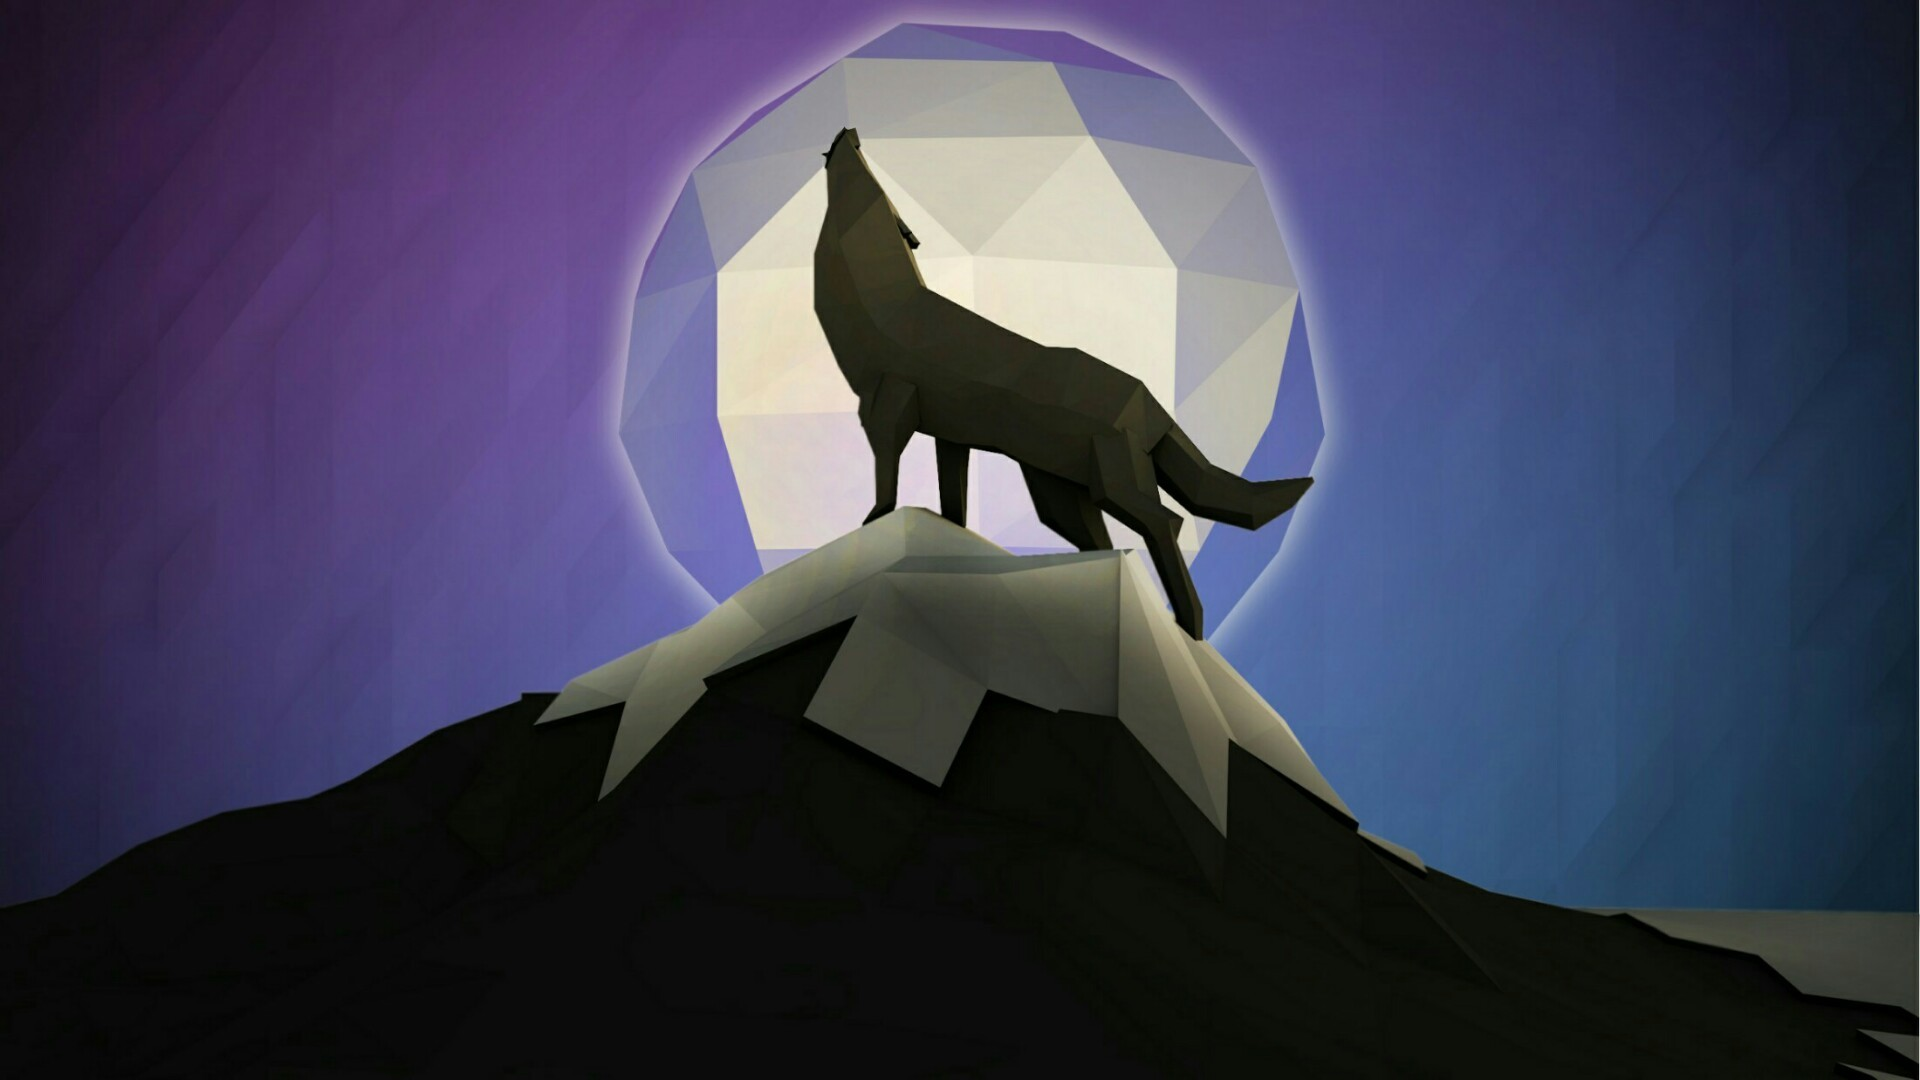 Res: 1920x1080, Low Poly Wolf Art Wallpaper   Wallpaper Studio 10   Tens of thousands HD  and UltraHD wallpapers for Android, Windows and Xbox